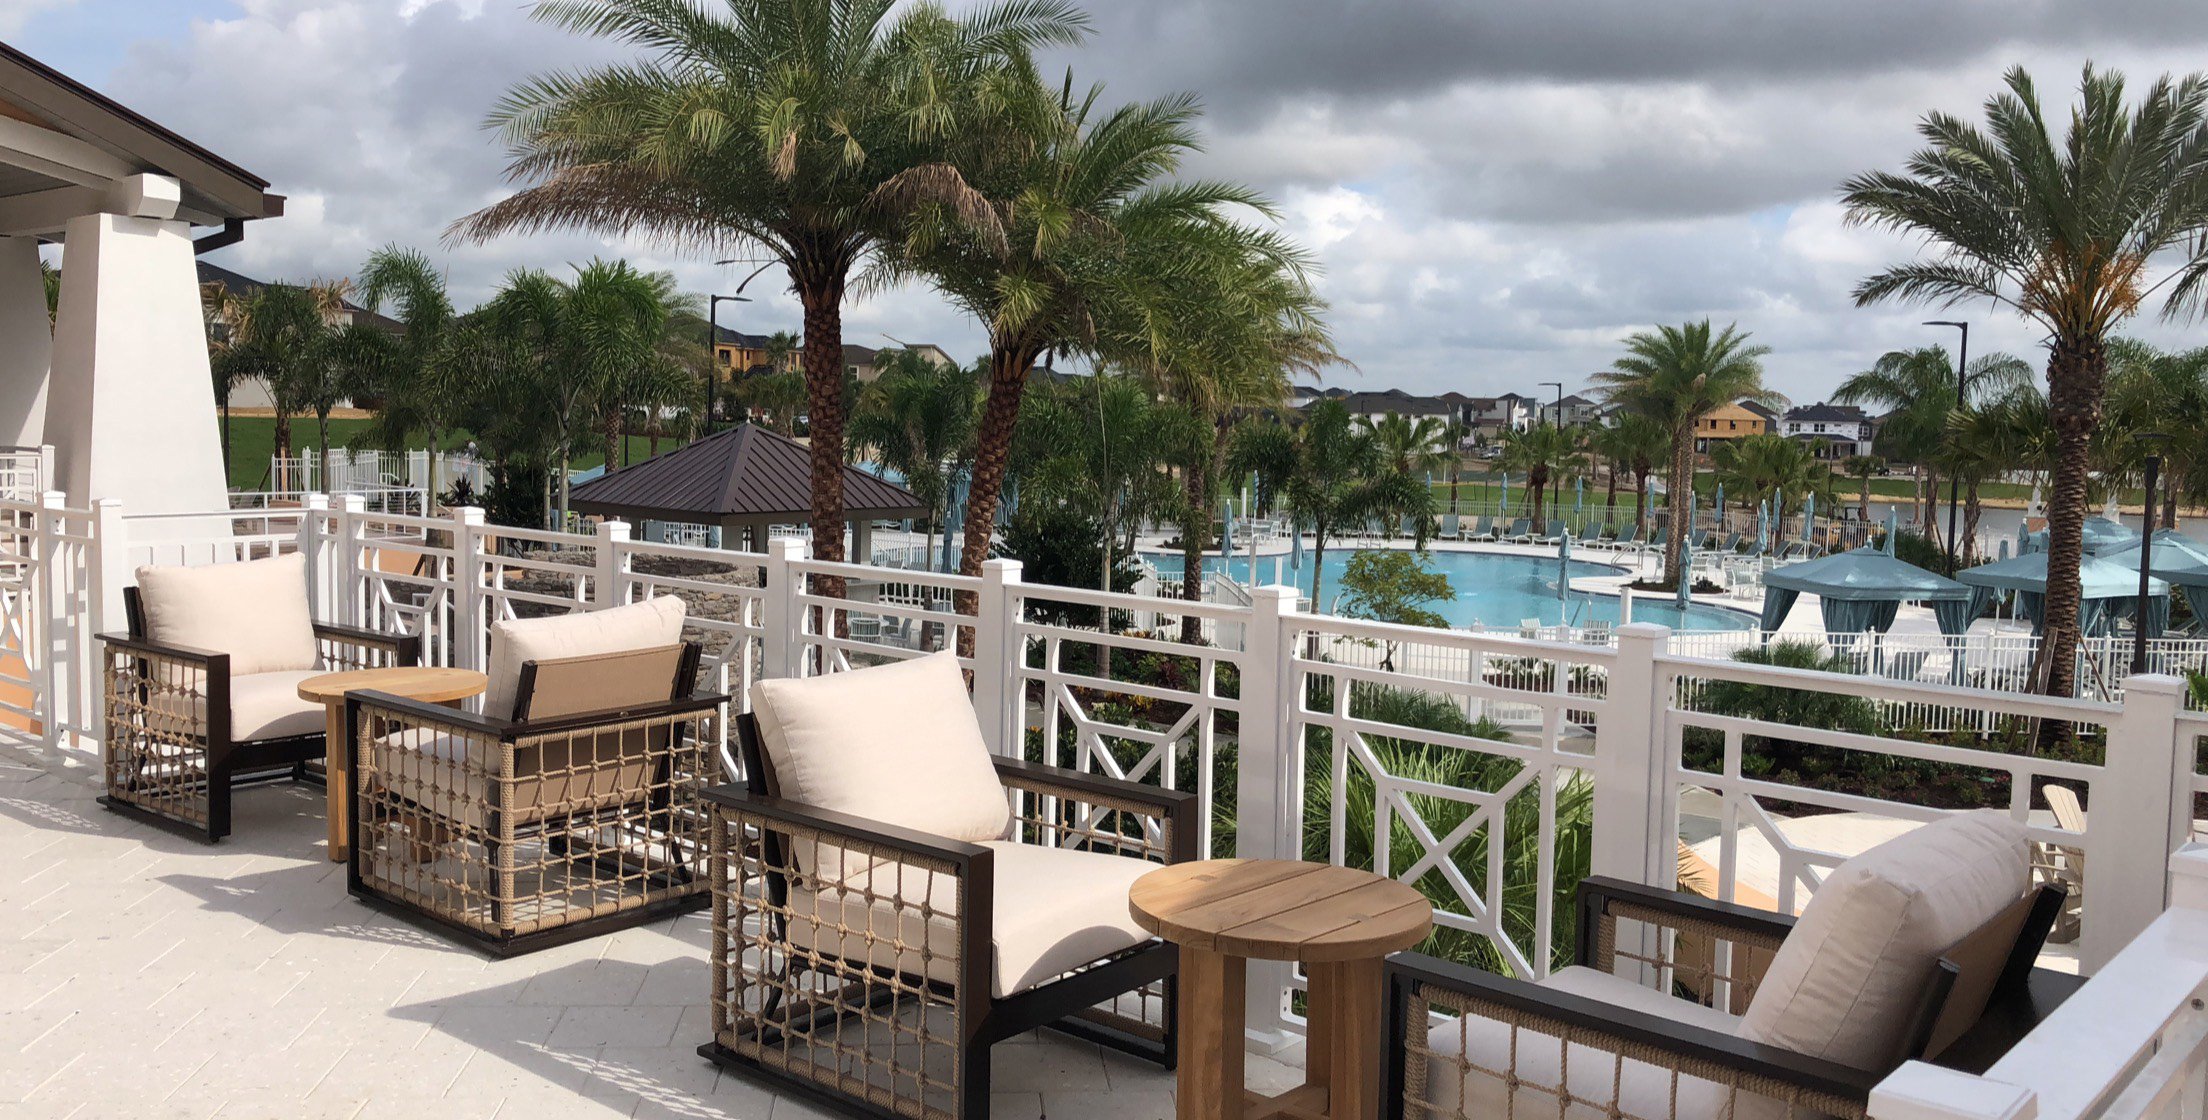 Solara Resort Clubhouse Sneak Peek